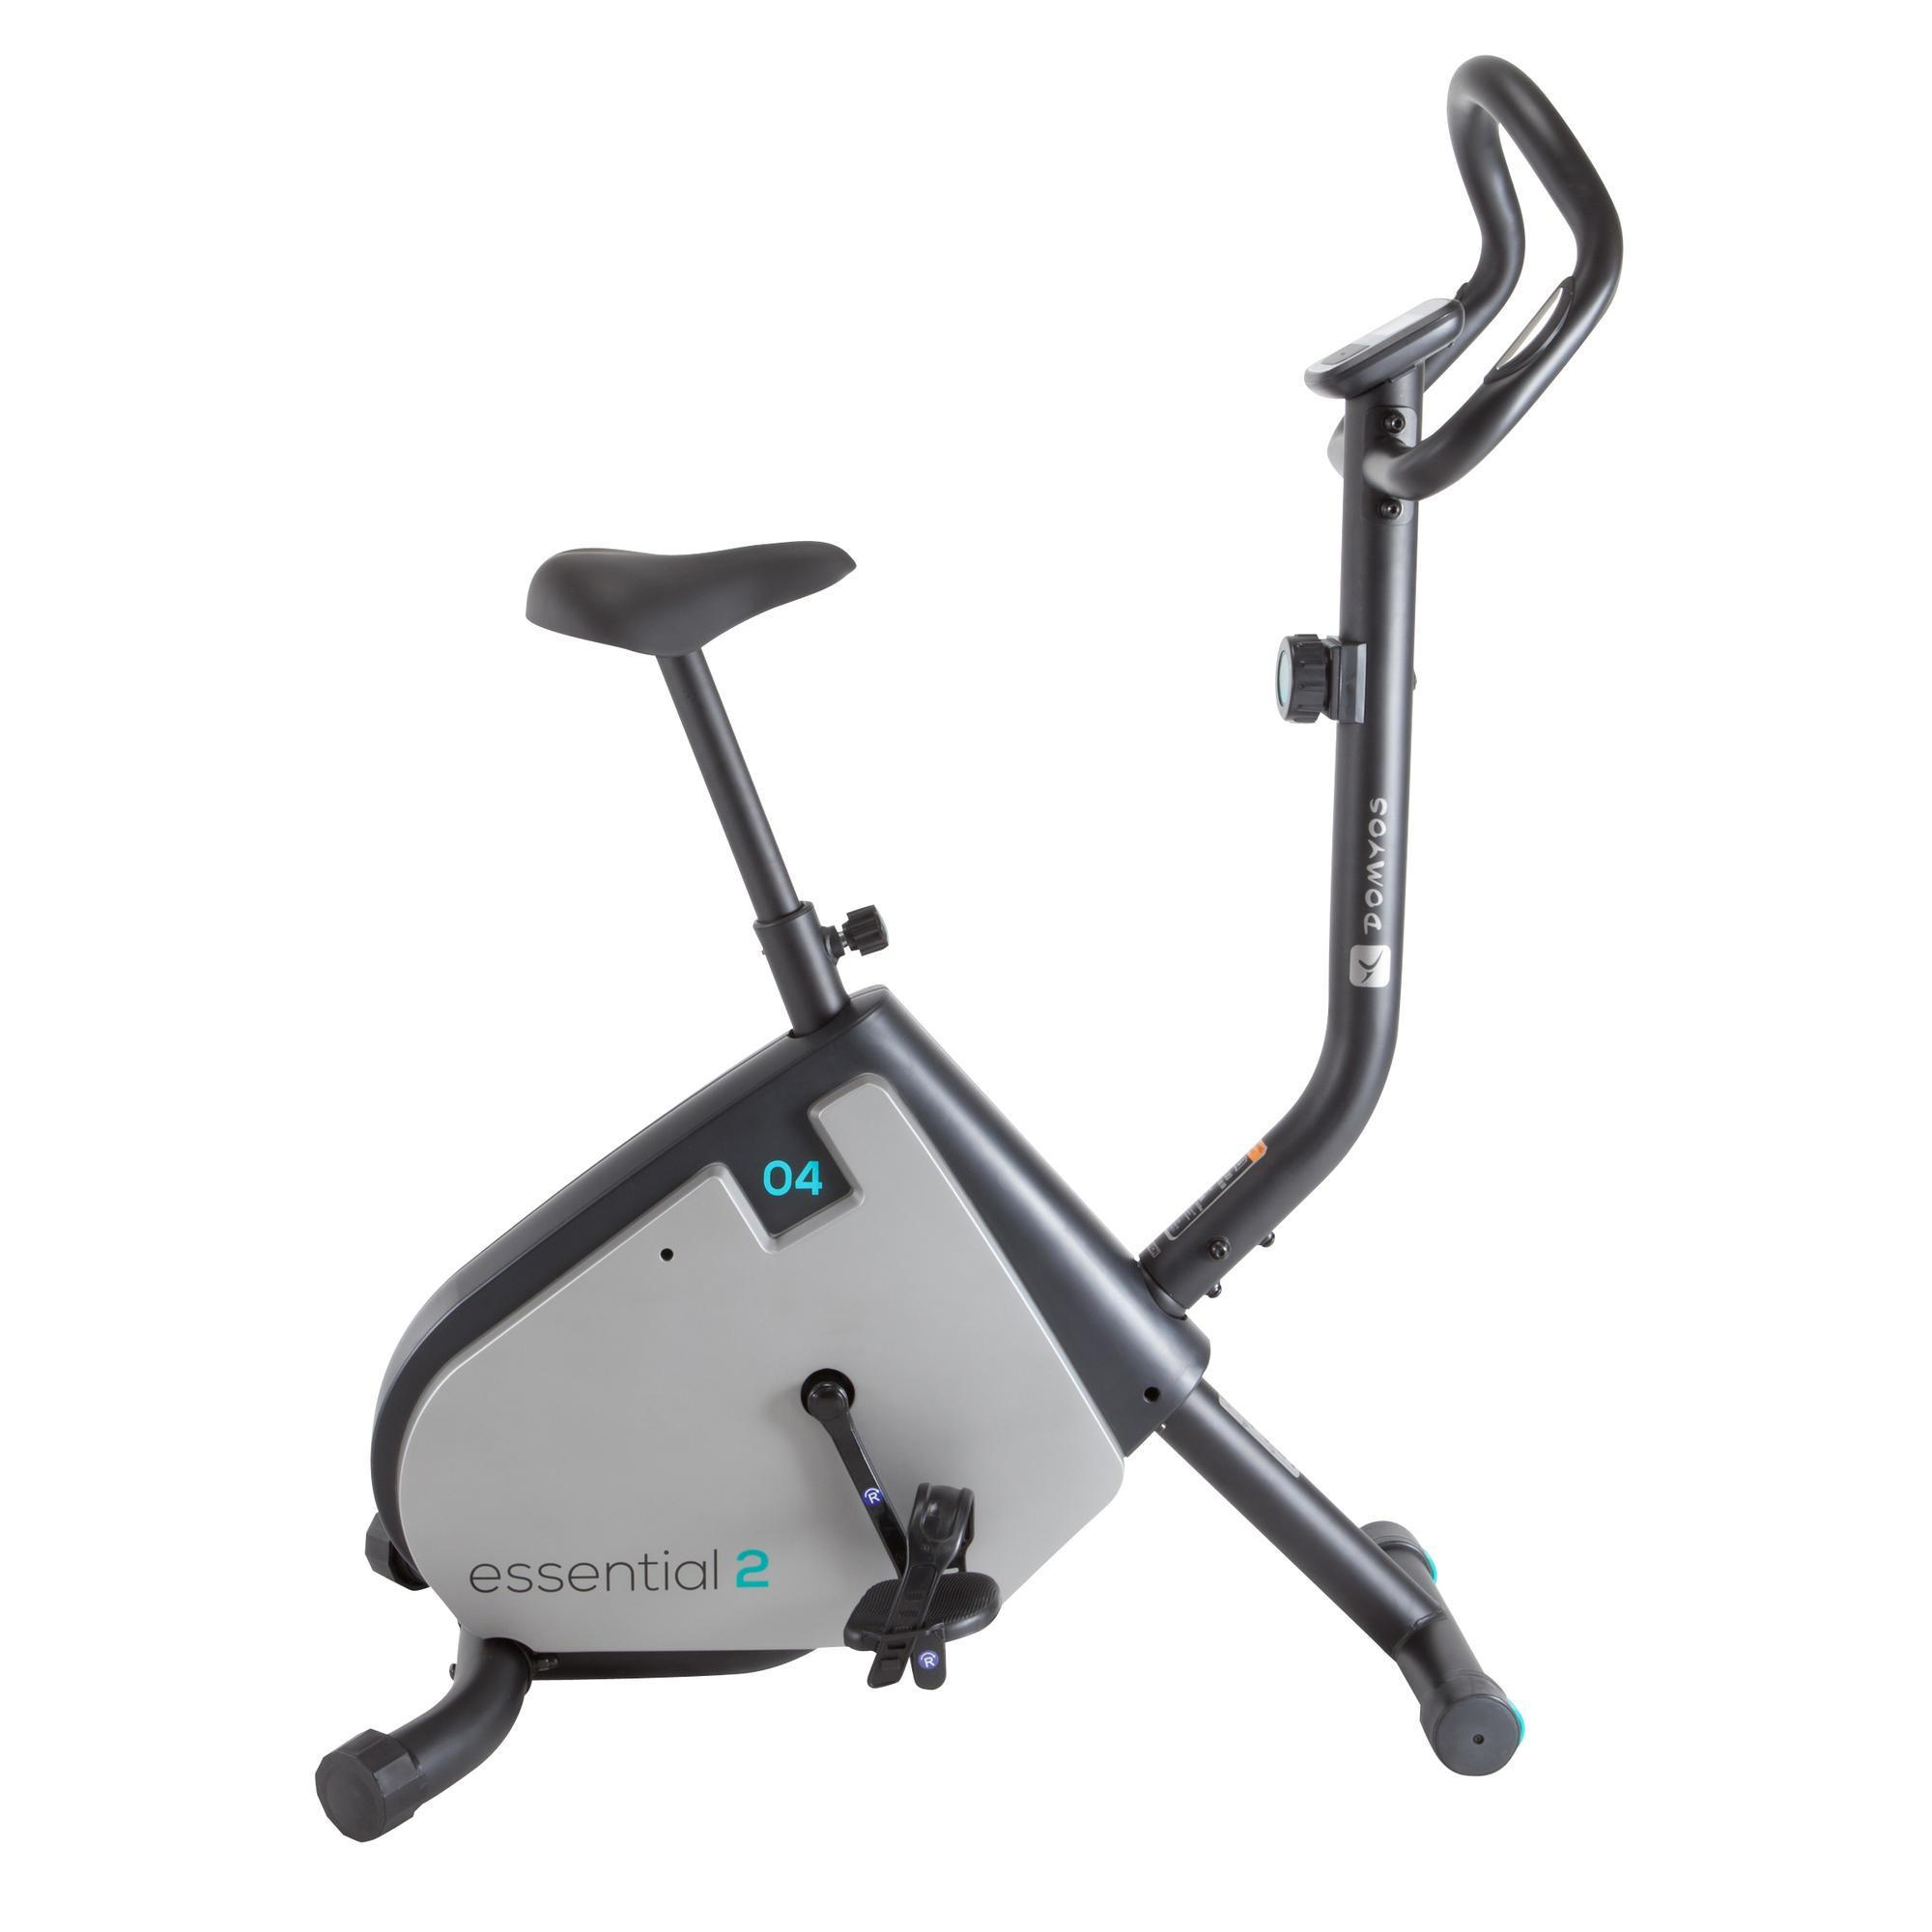 Essential 2 Exercise Bike Domyos By Decathlon